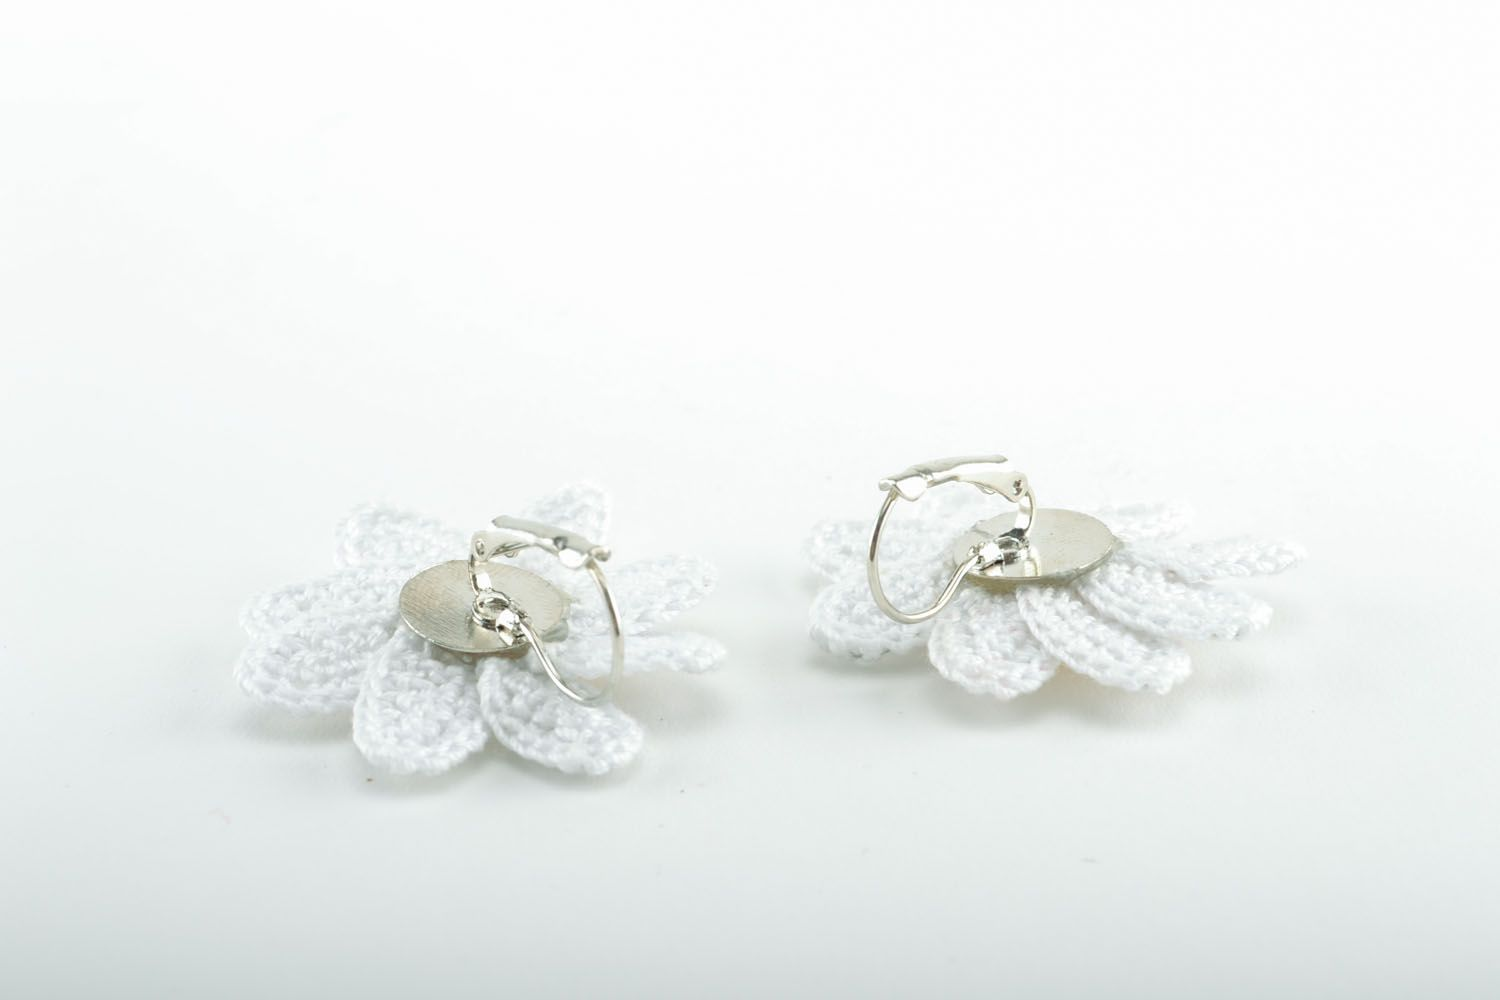 Earrings in the shape of camomiles photo 4